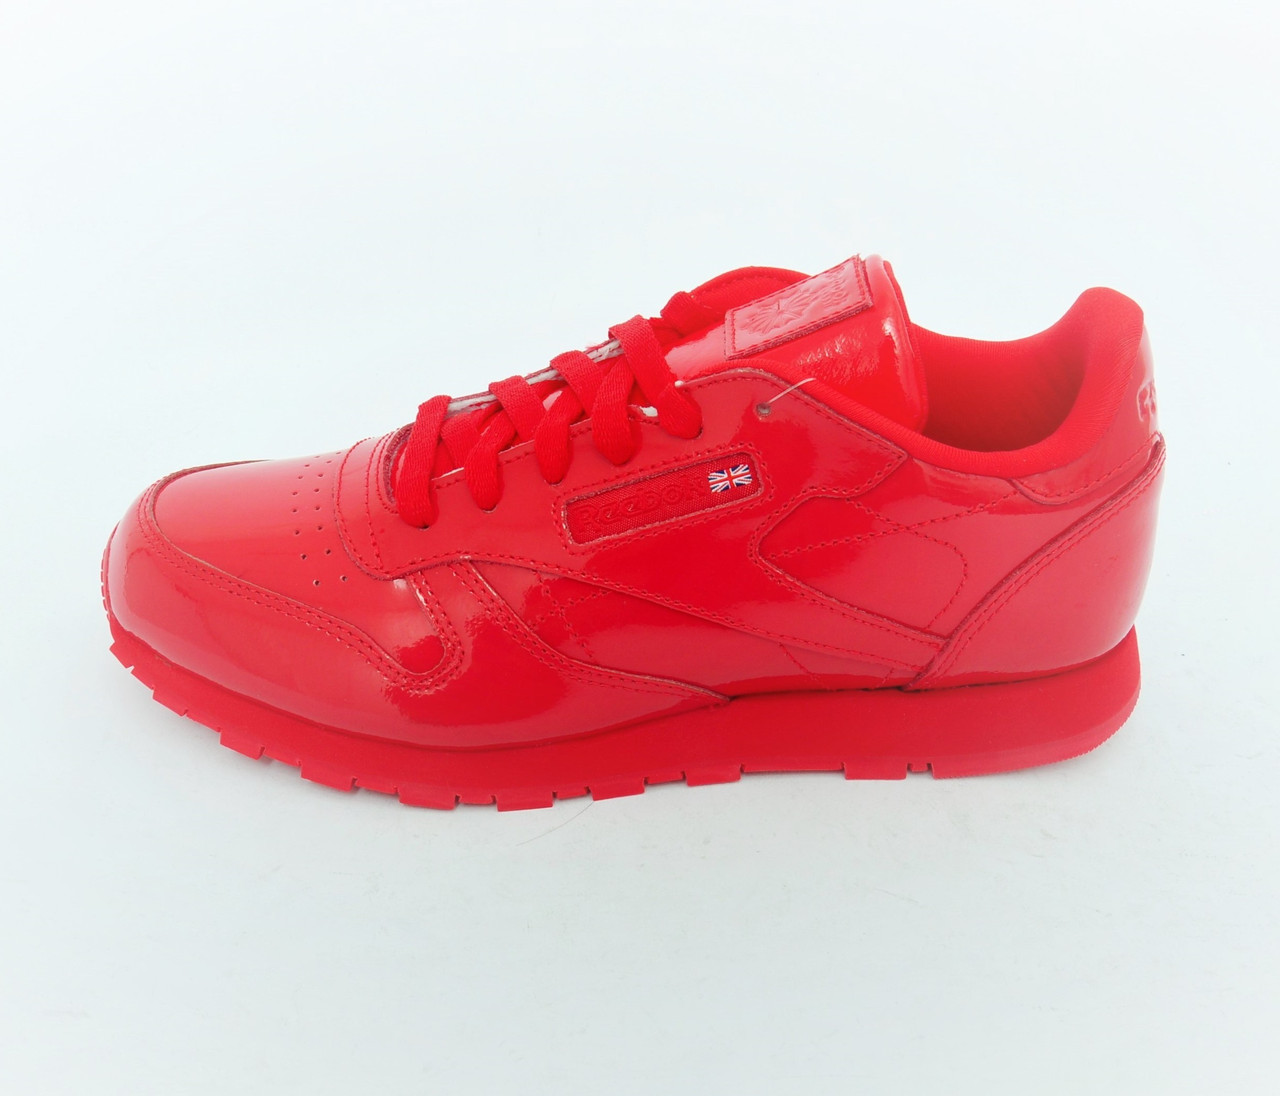 Женские Кроссовки Reebok Classic Leather Patent Red CN2062 — в ... 1d4292f4a21